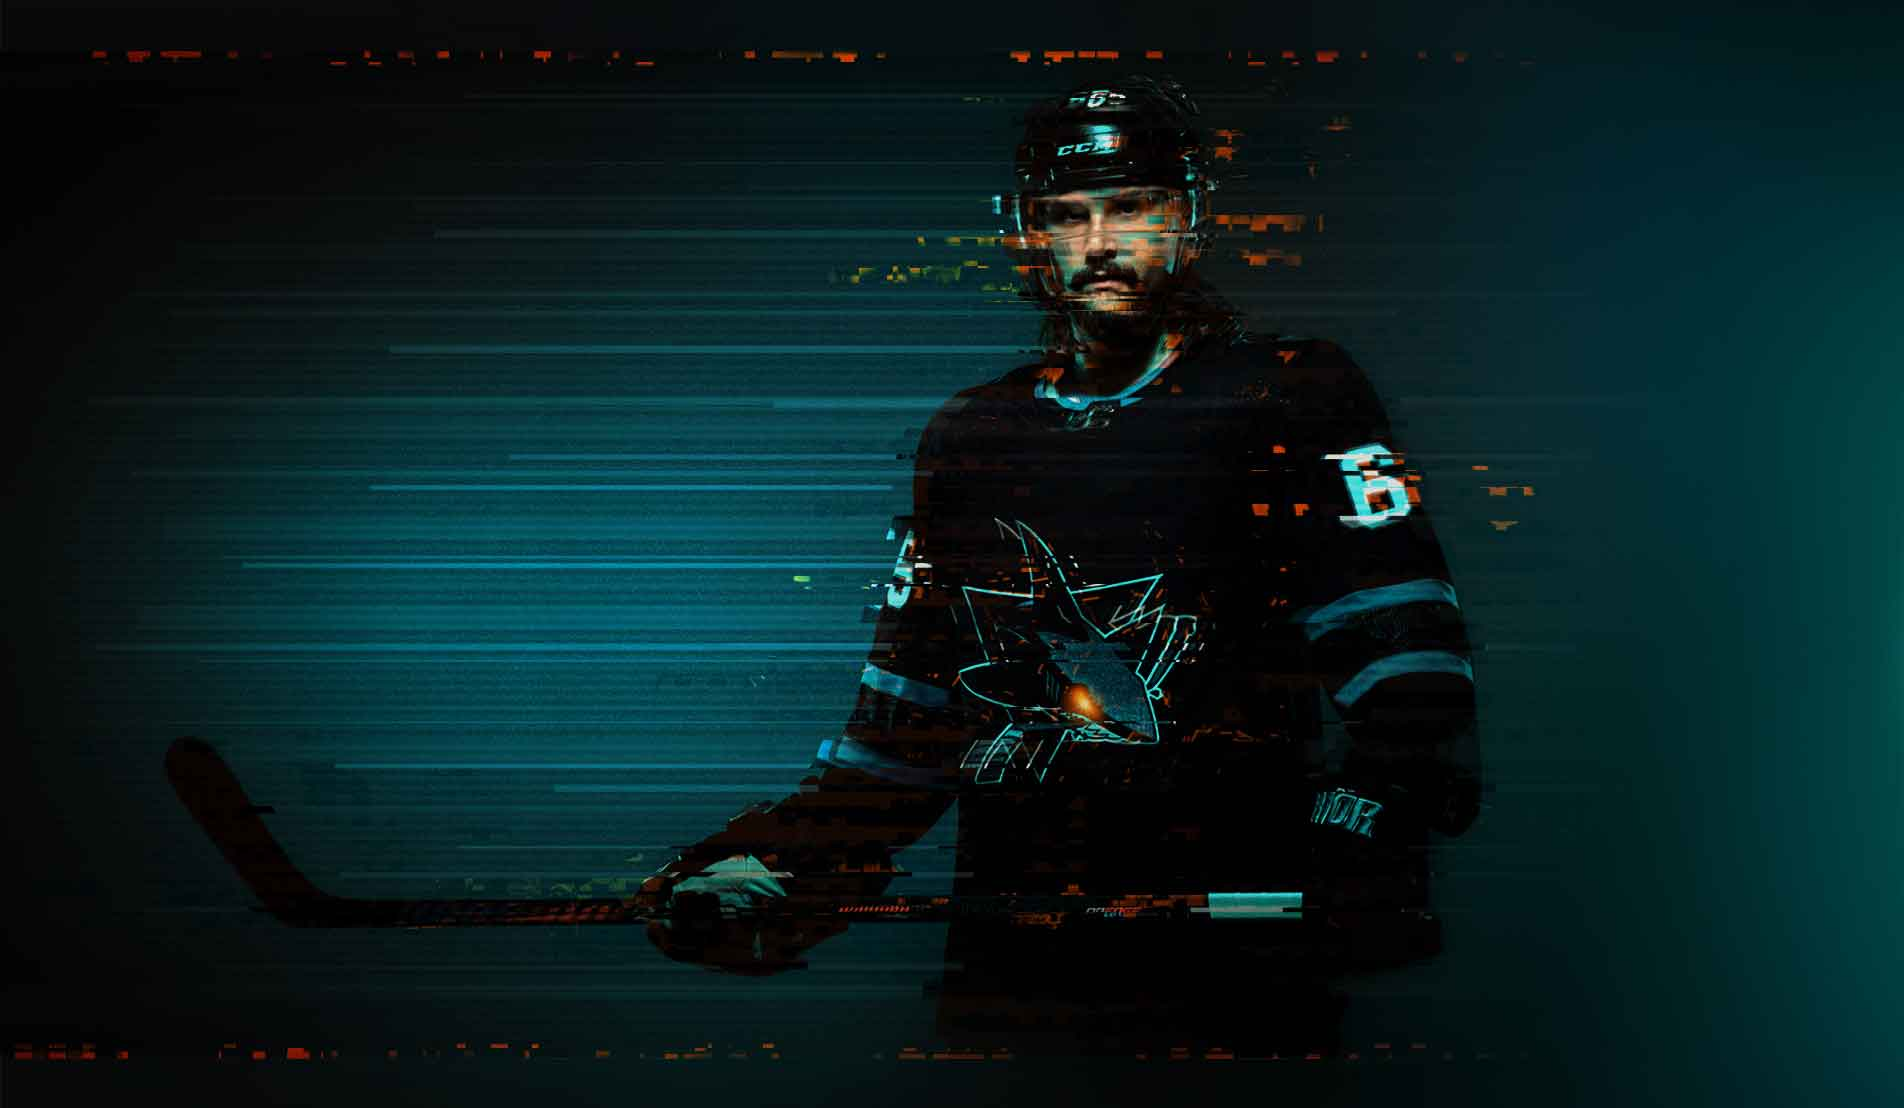 sjsharks_glitch_karlsson_home_page_darke